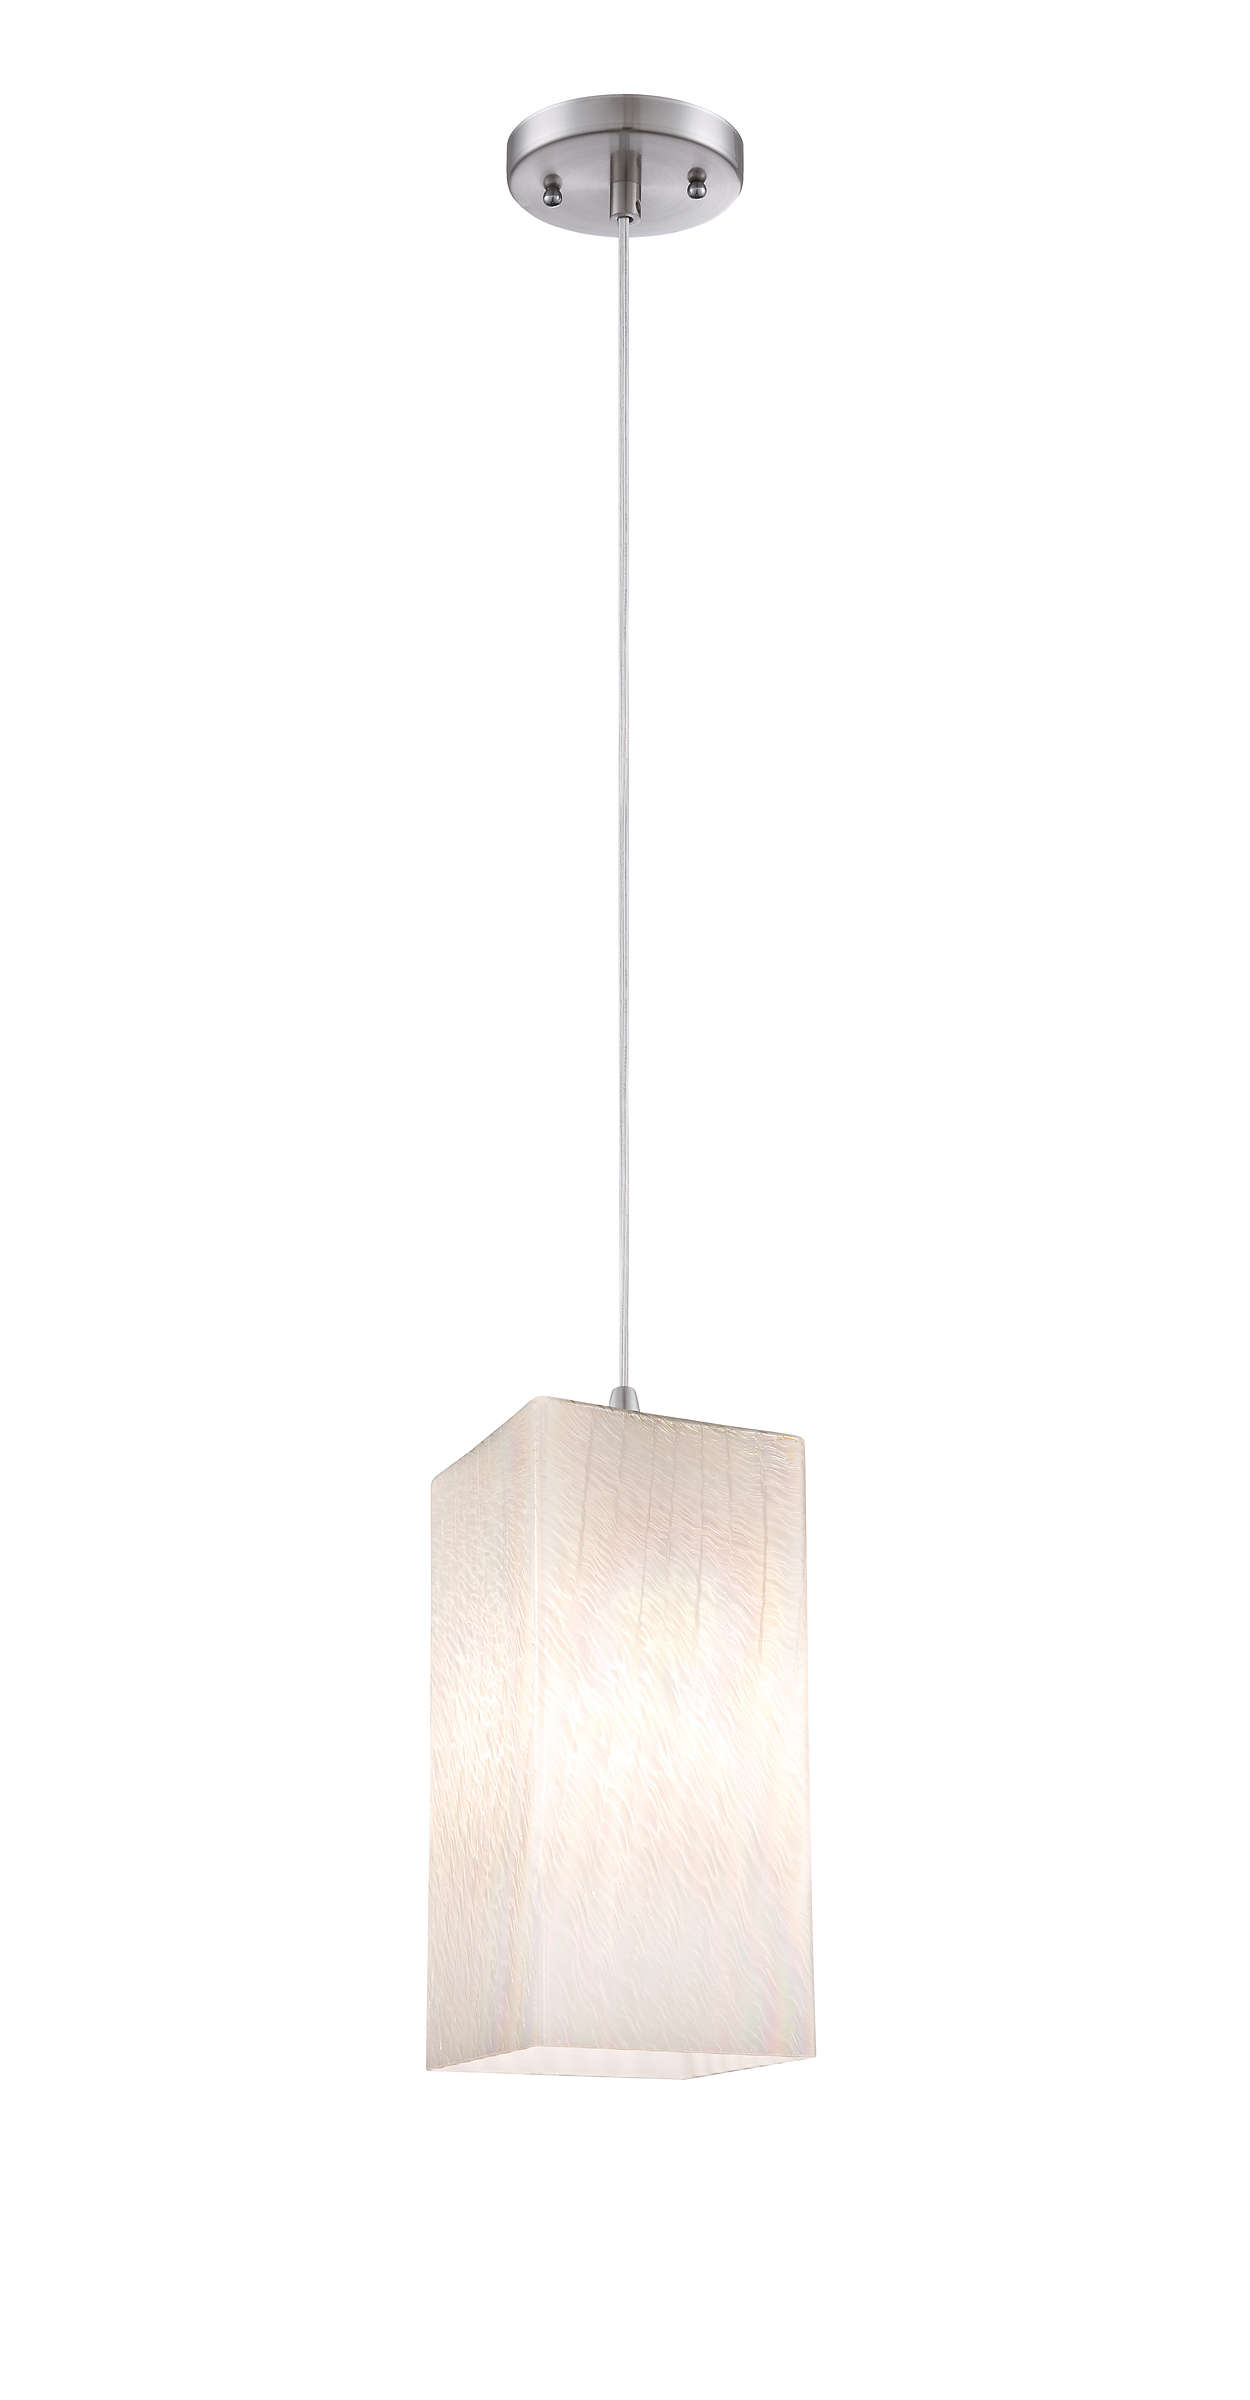 Cotton Candy LED pendant in Satin Nickel finish